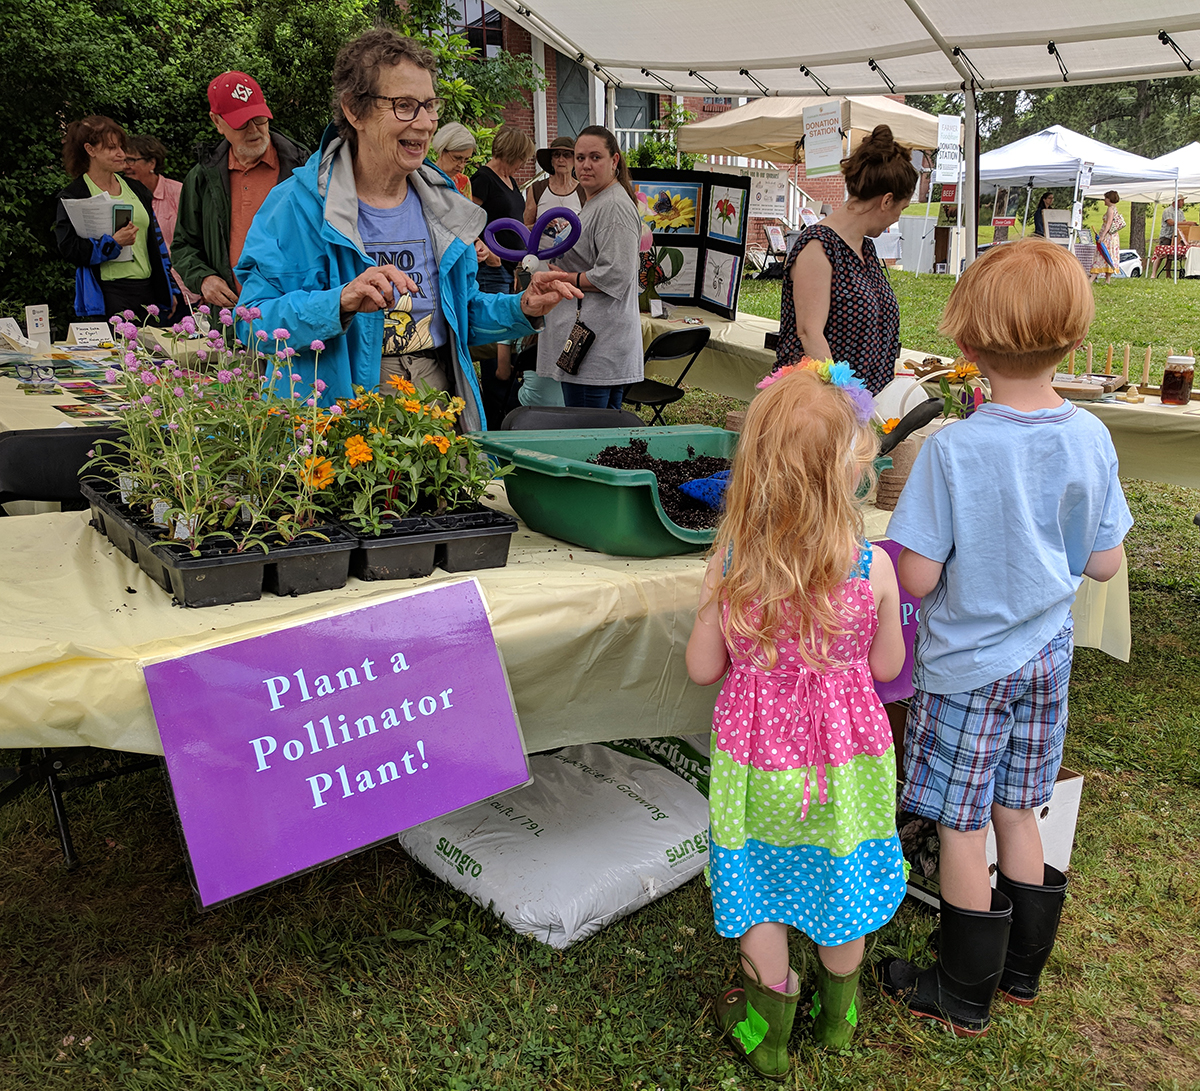 The Plant a Pollinator Plant activity attracted folks of all ages.